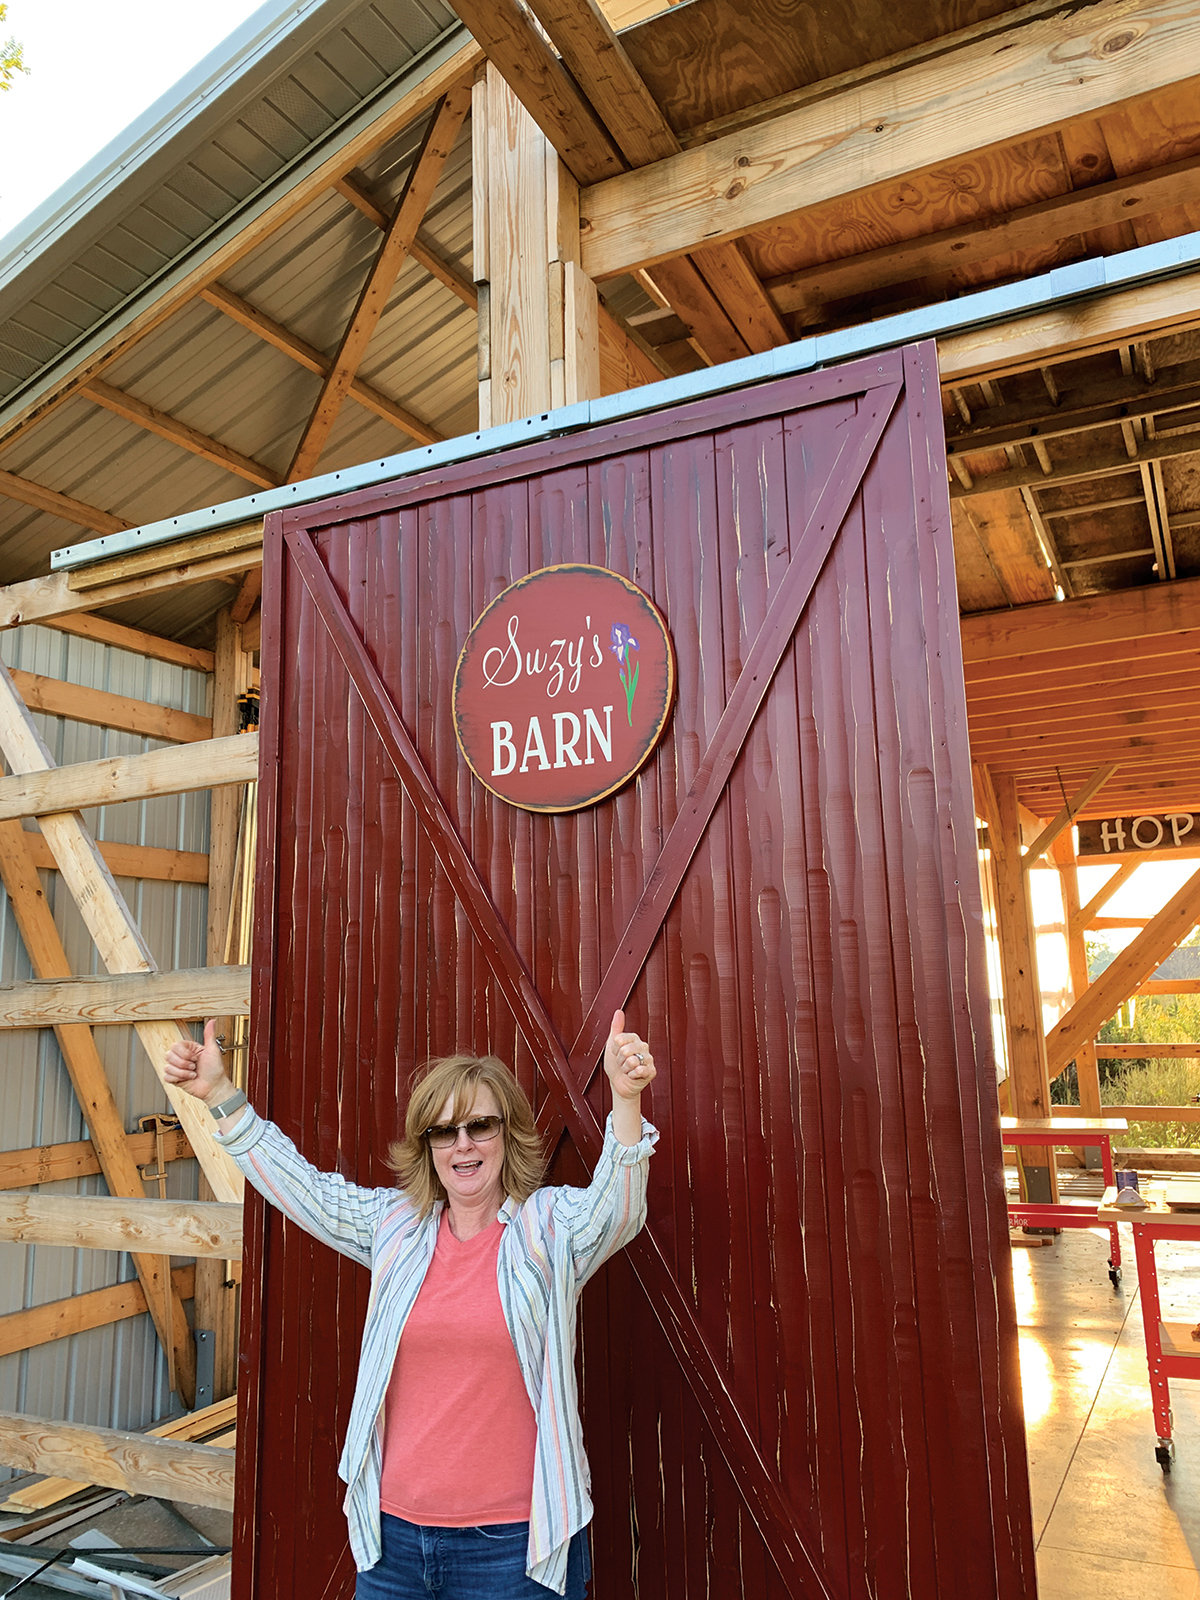 Suzy celebrates a finished barn door complete with sign.